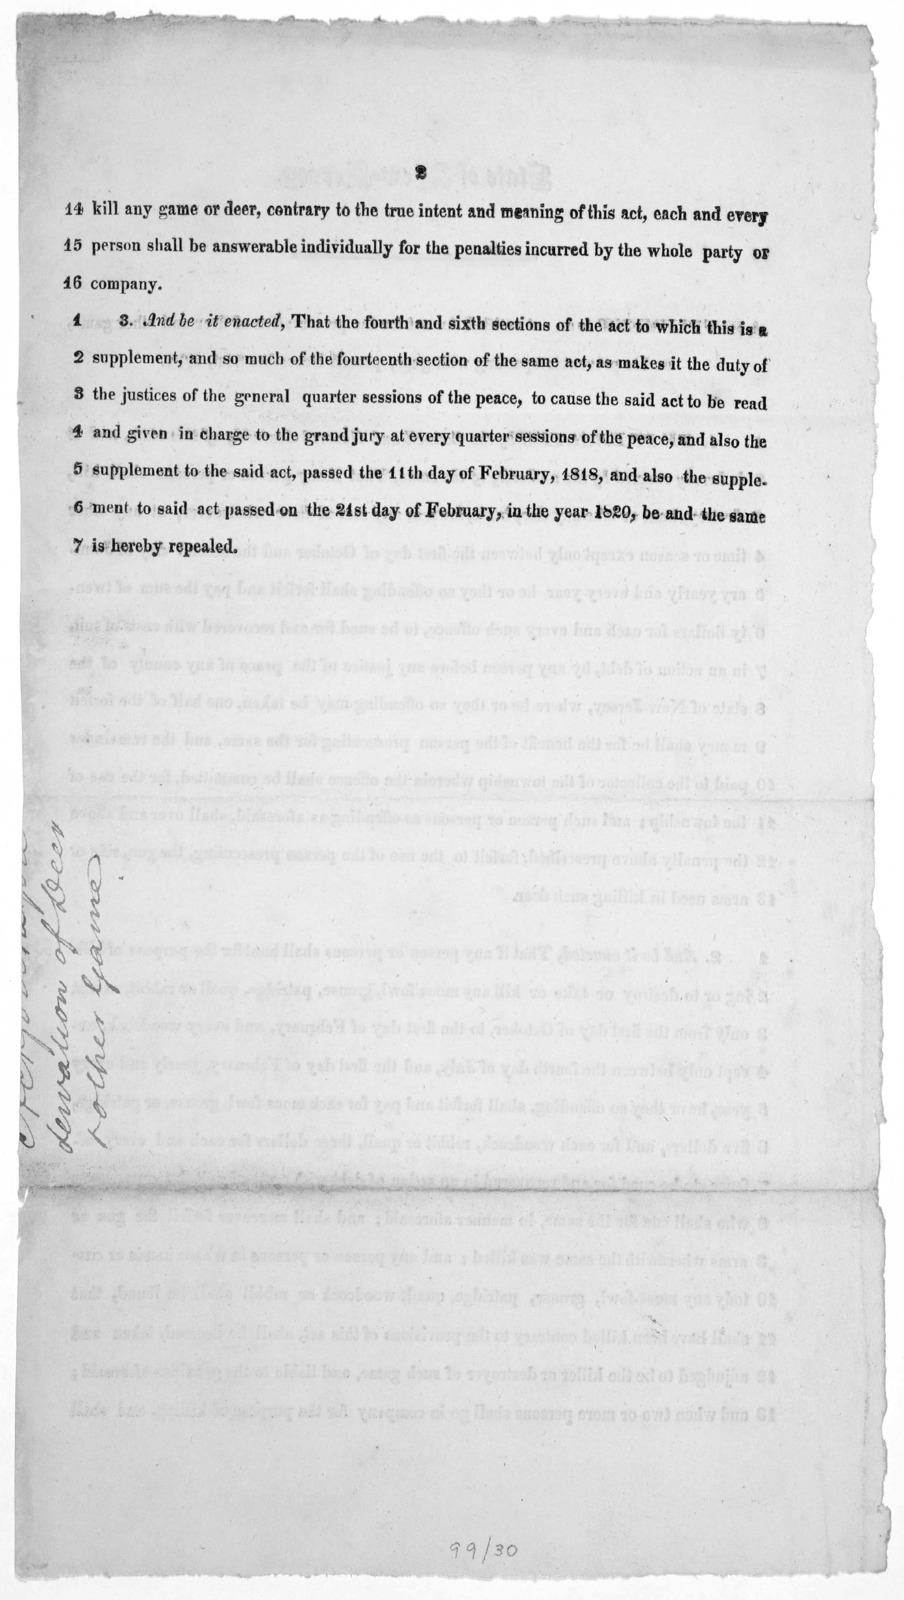 State of New Jersey. A supplement to an act entitled, An act for the preservation of deer and other game and to prevent trespassing with guns, passed December 21st, 1771 [1822?].